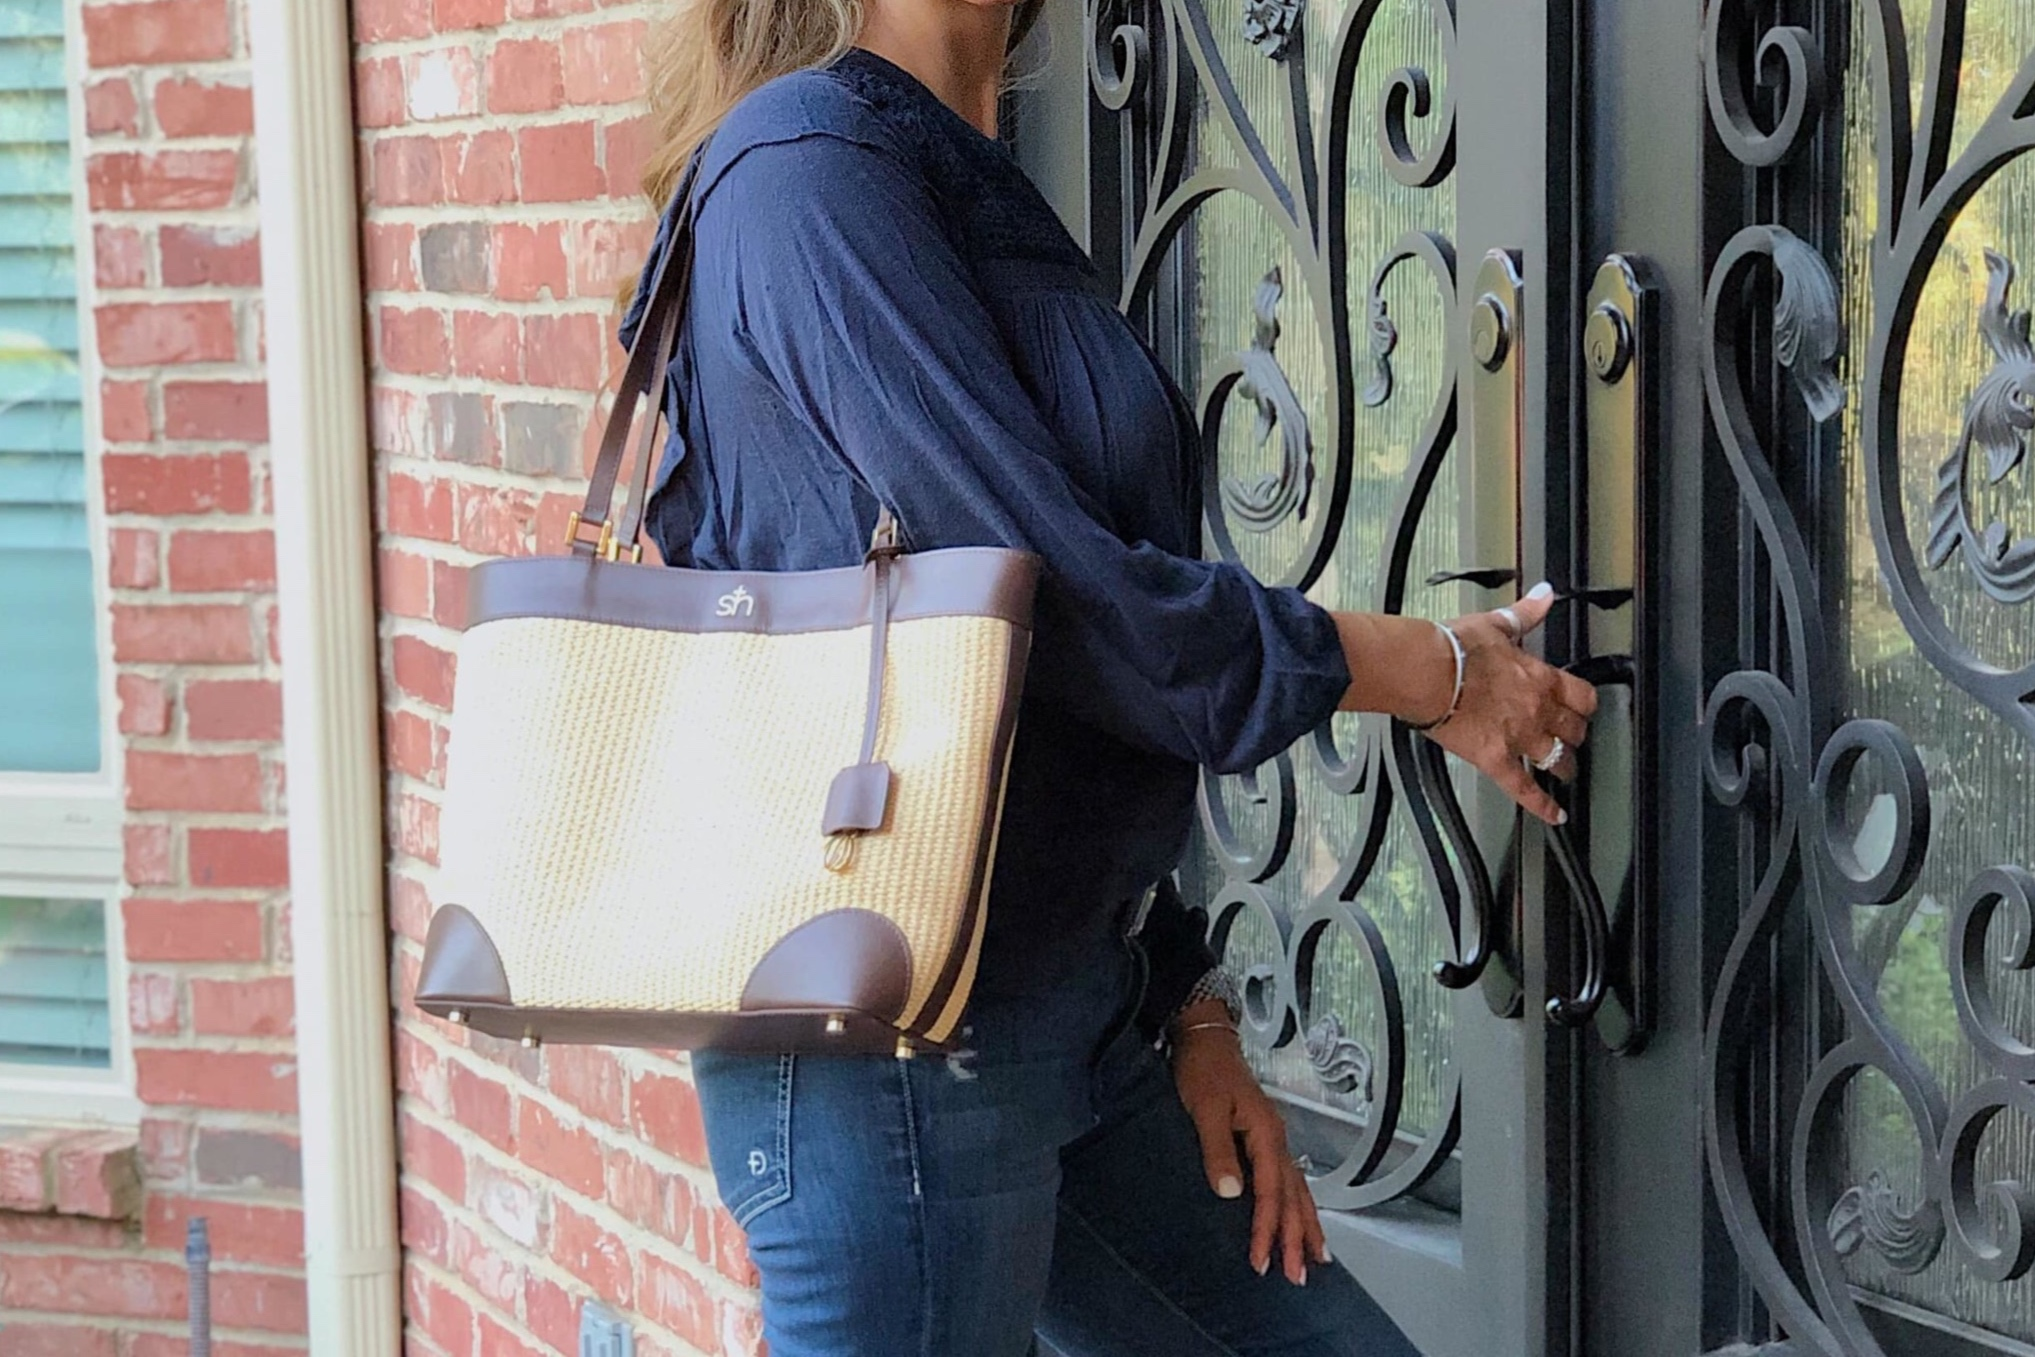 The handles on the    Swatzell + Heilig    handbag make carrying it on your shoulder a breeze.